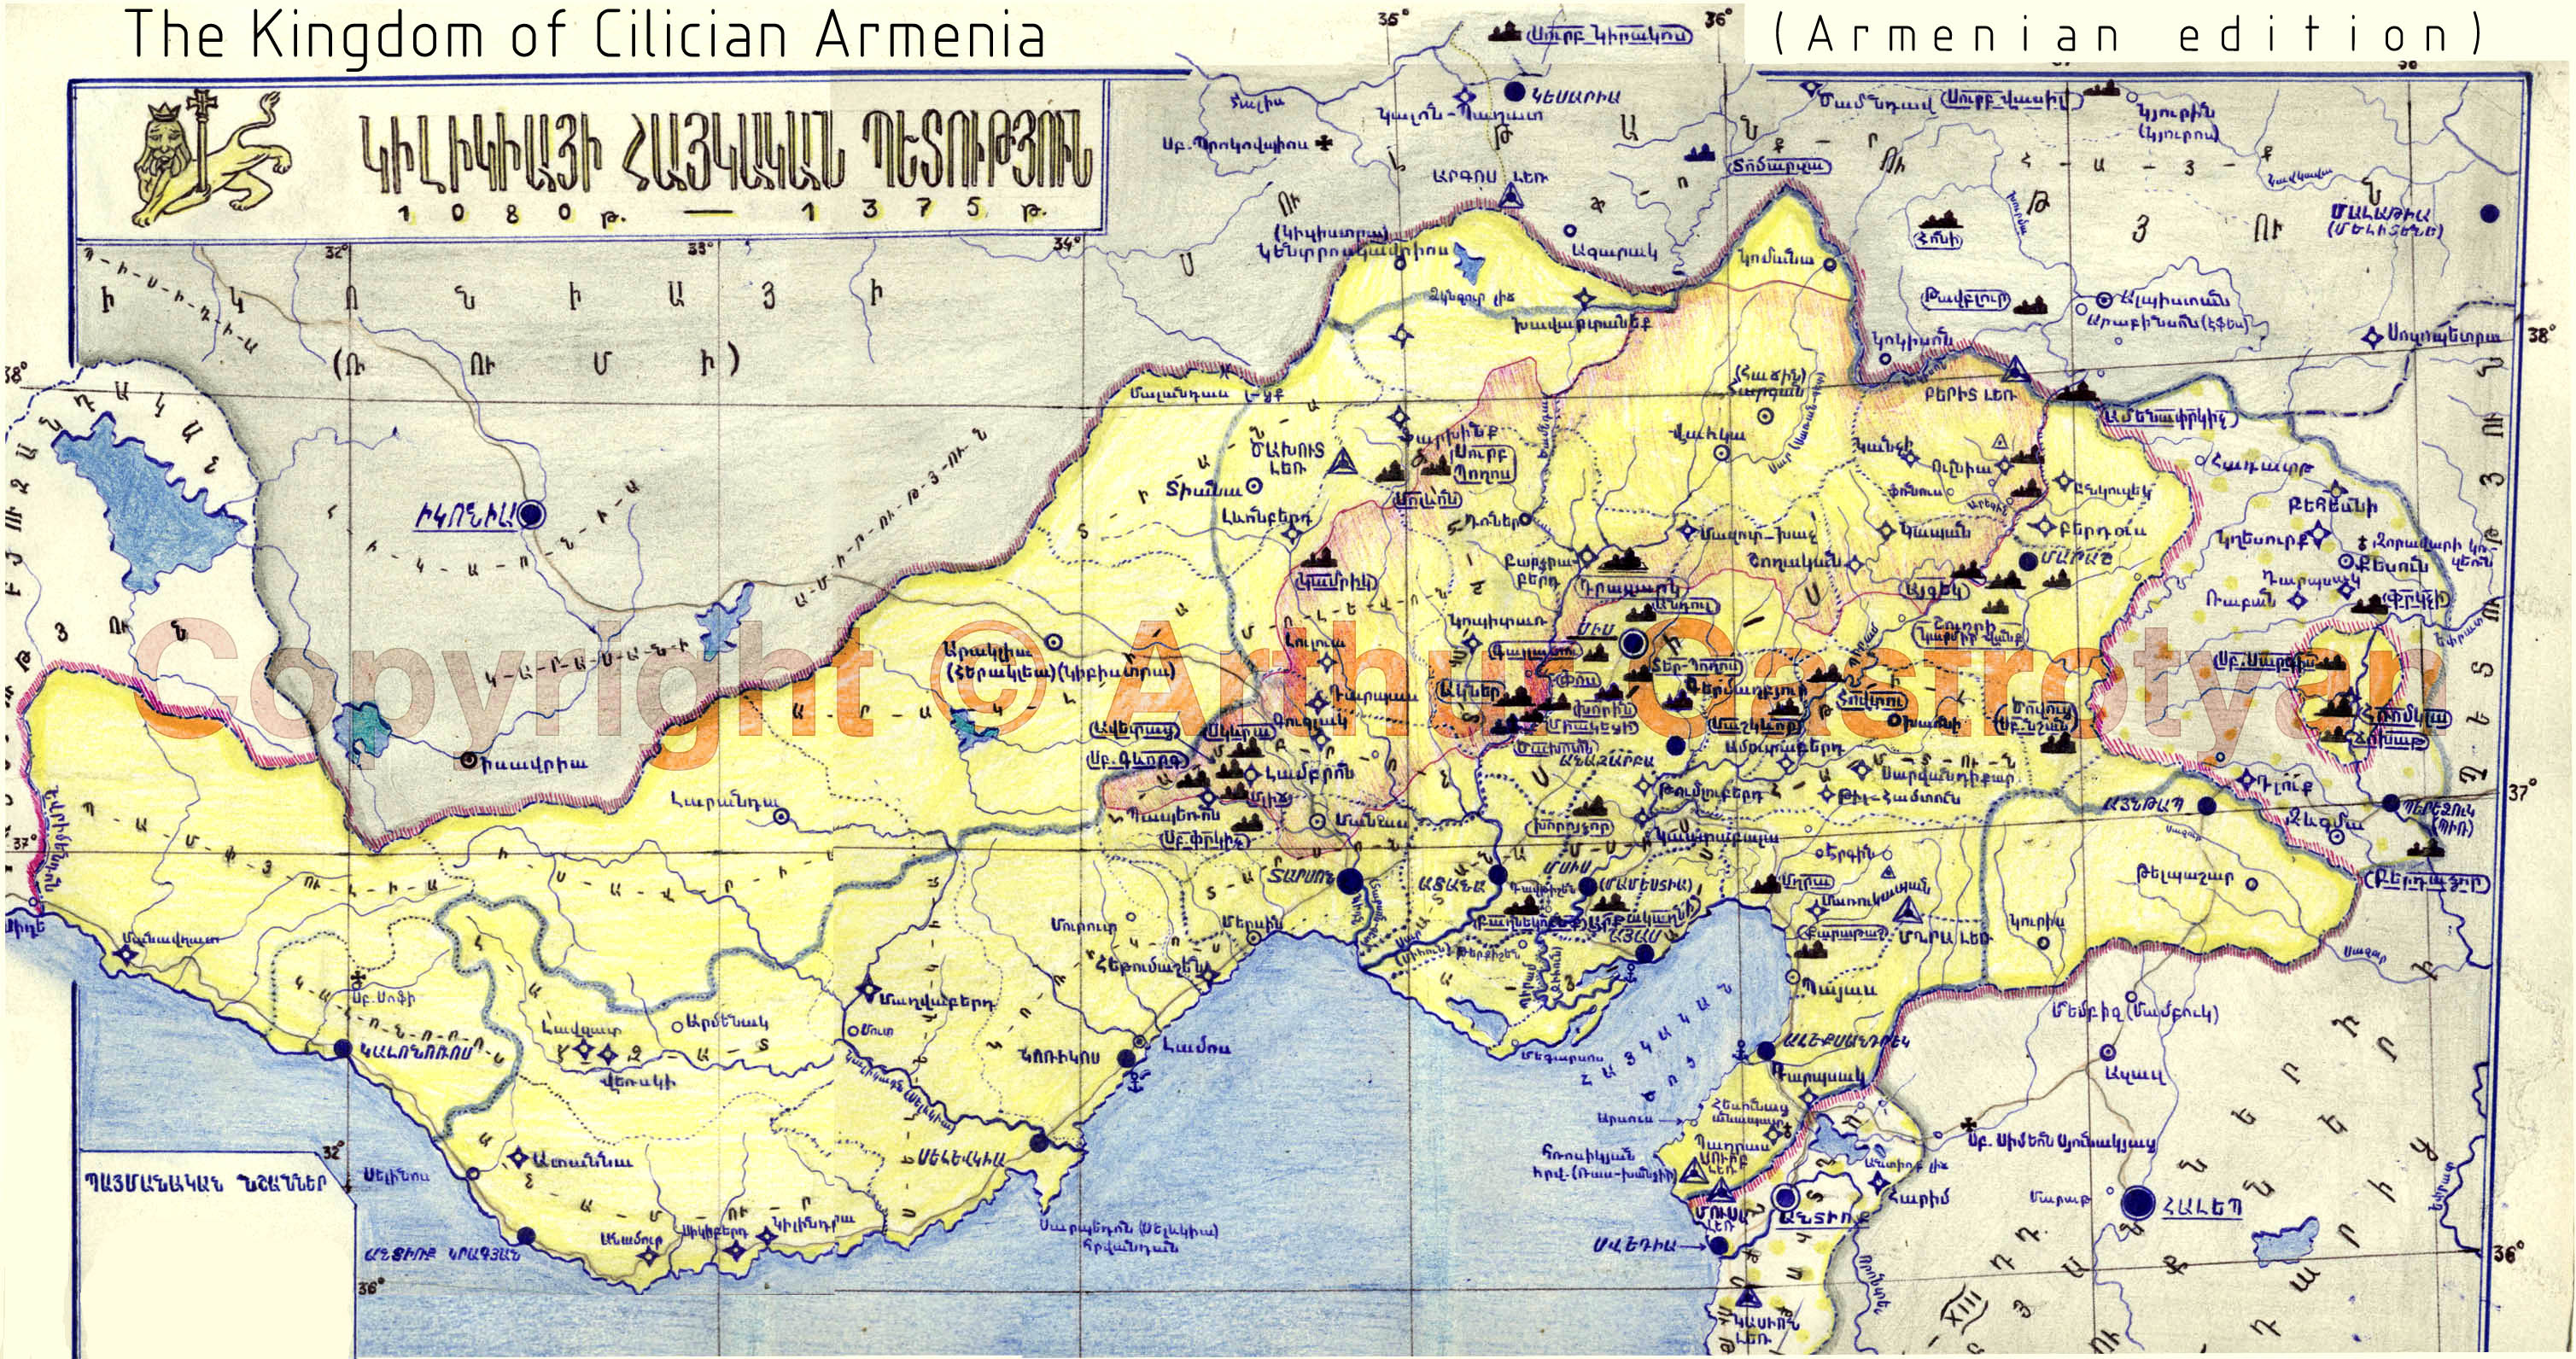 File:Kingdom of Cilician Armenia.jpg - Wikimedia Commons on greece map, korea map, epirus map, roman empire map, crete map, france map, japan map, republic of armenia map, byzantine empire map, corsica map, kurdistan map, kingdom of armenia flag, ptolemaic kingdom map, portugal map,